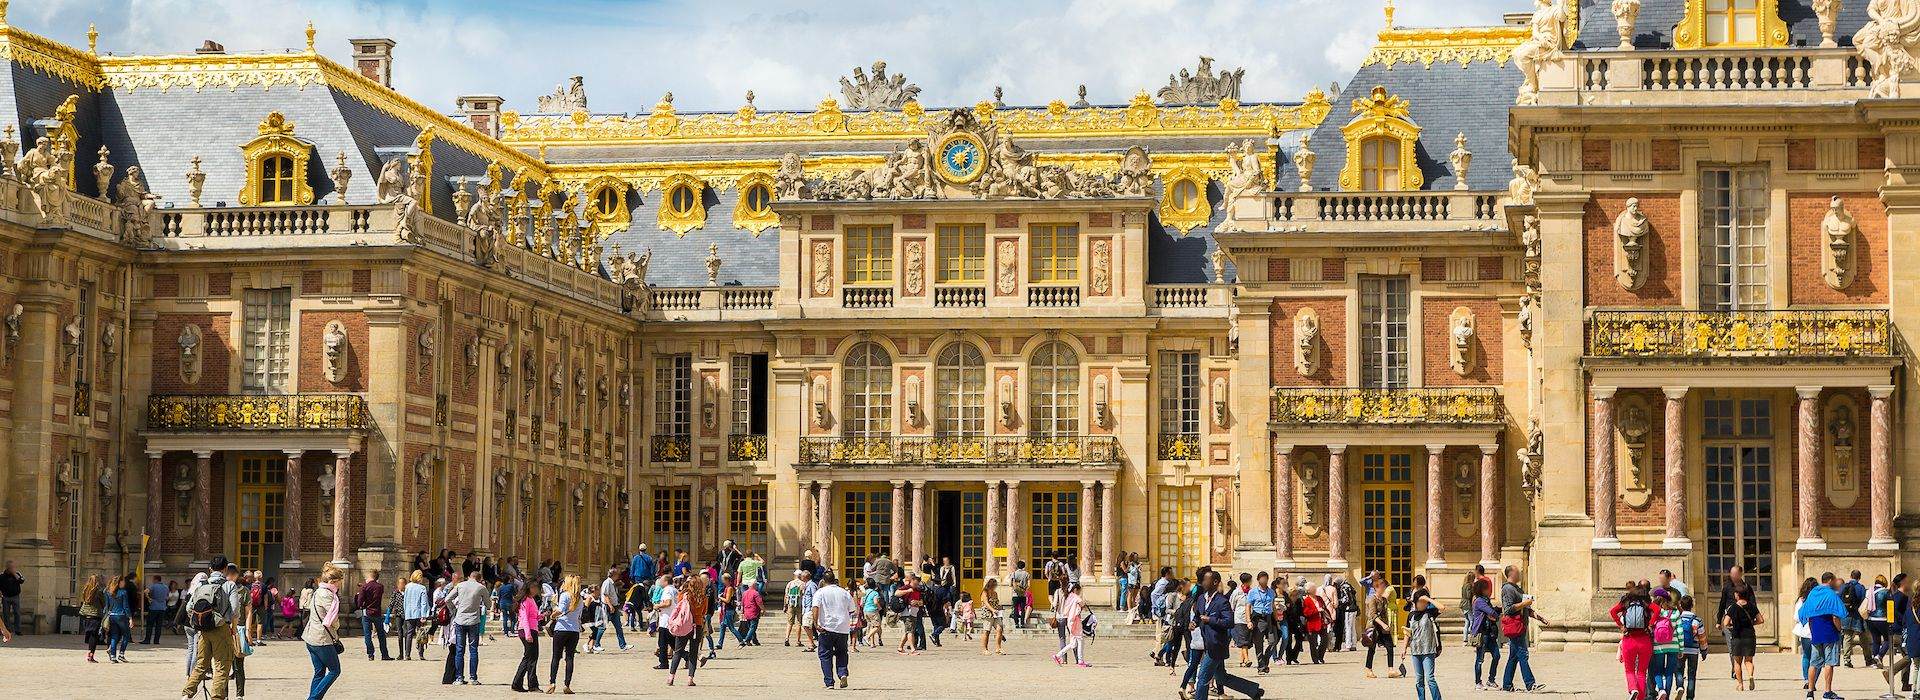 Palace & Gardens of Versailles Page